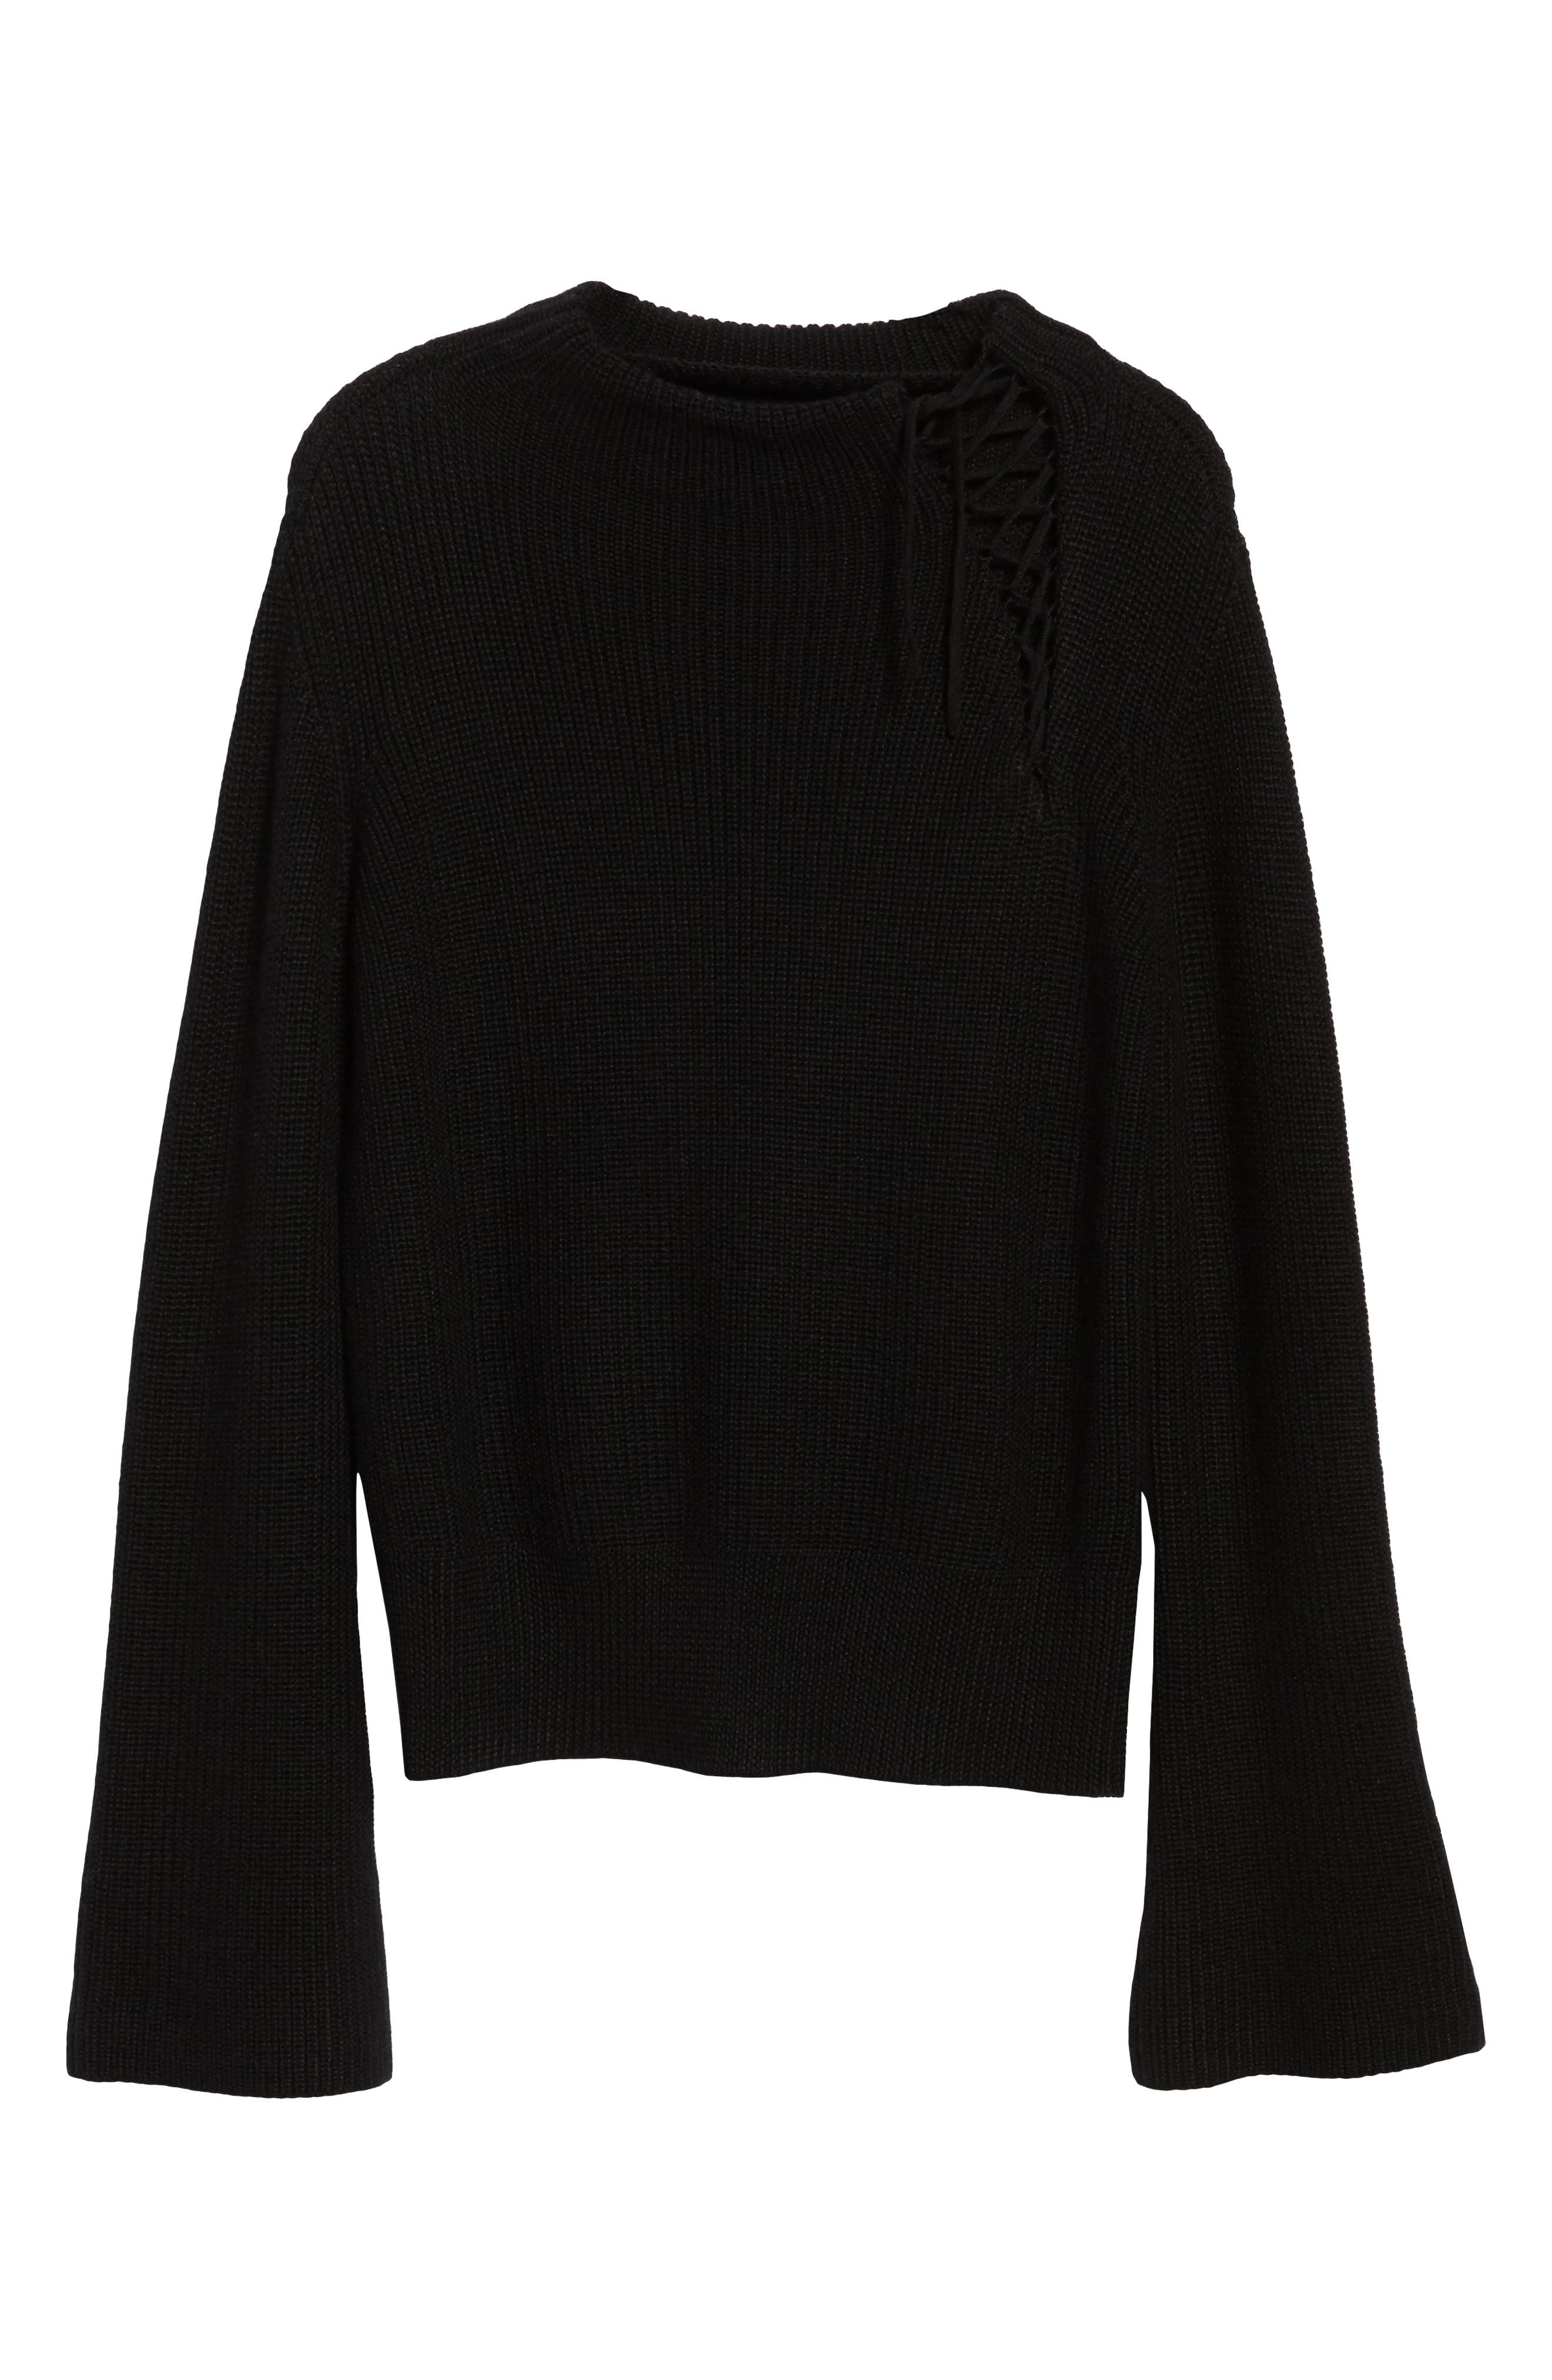 Gracey Mock Neck Sweater,                             Alternate thumbnail 6, color,                             001